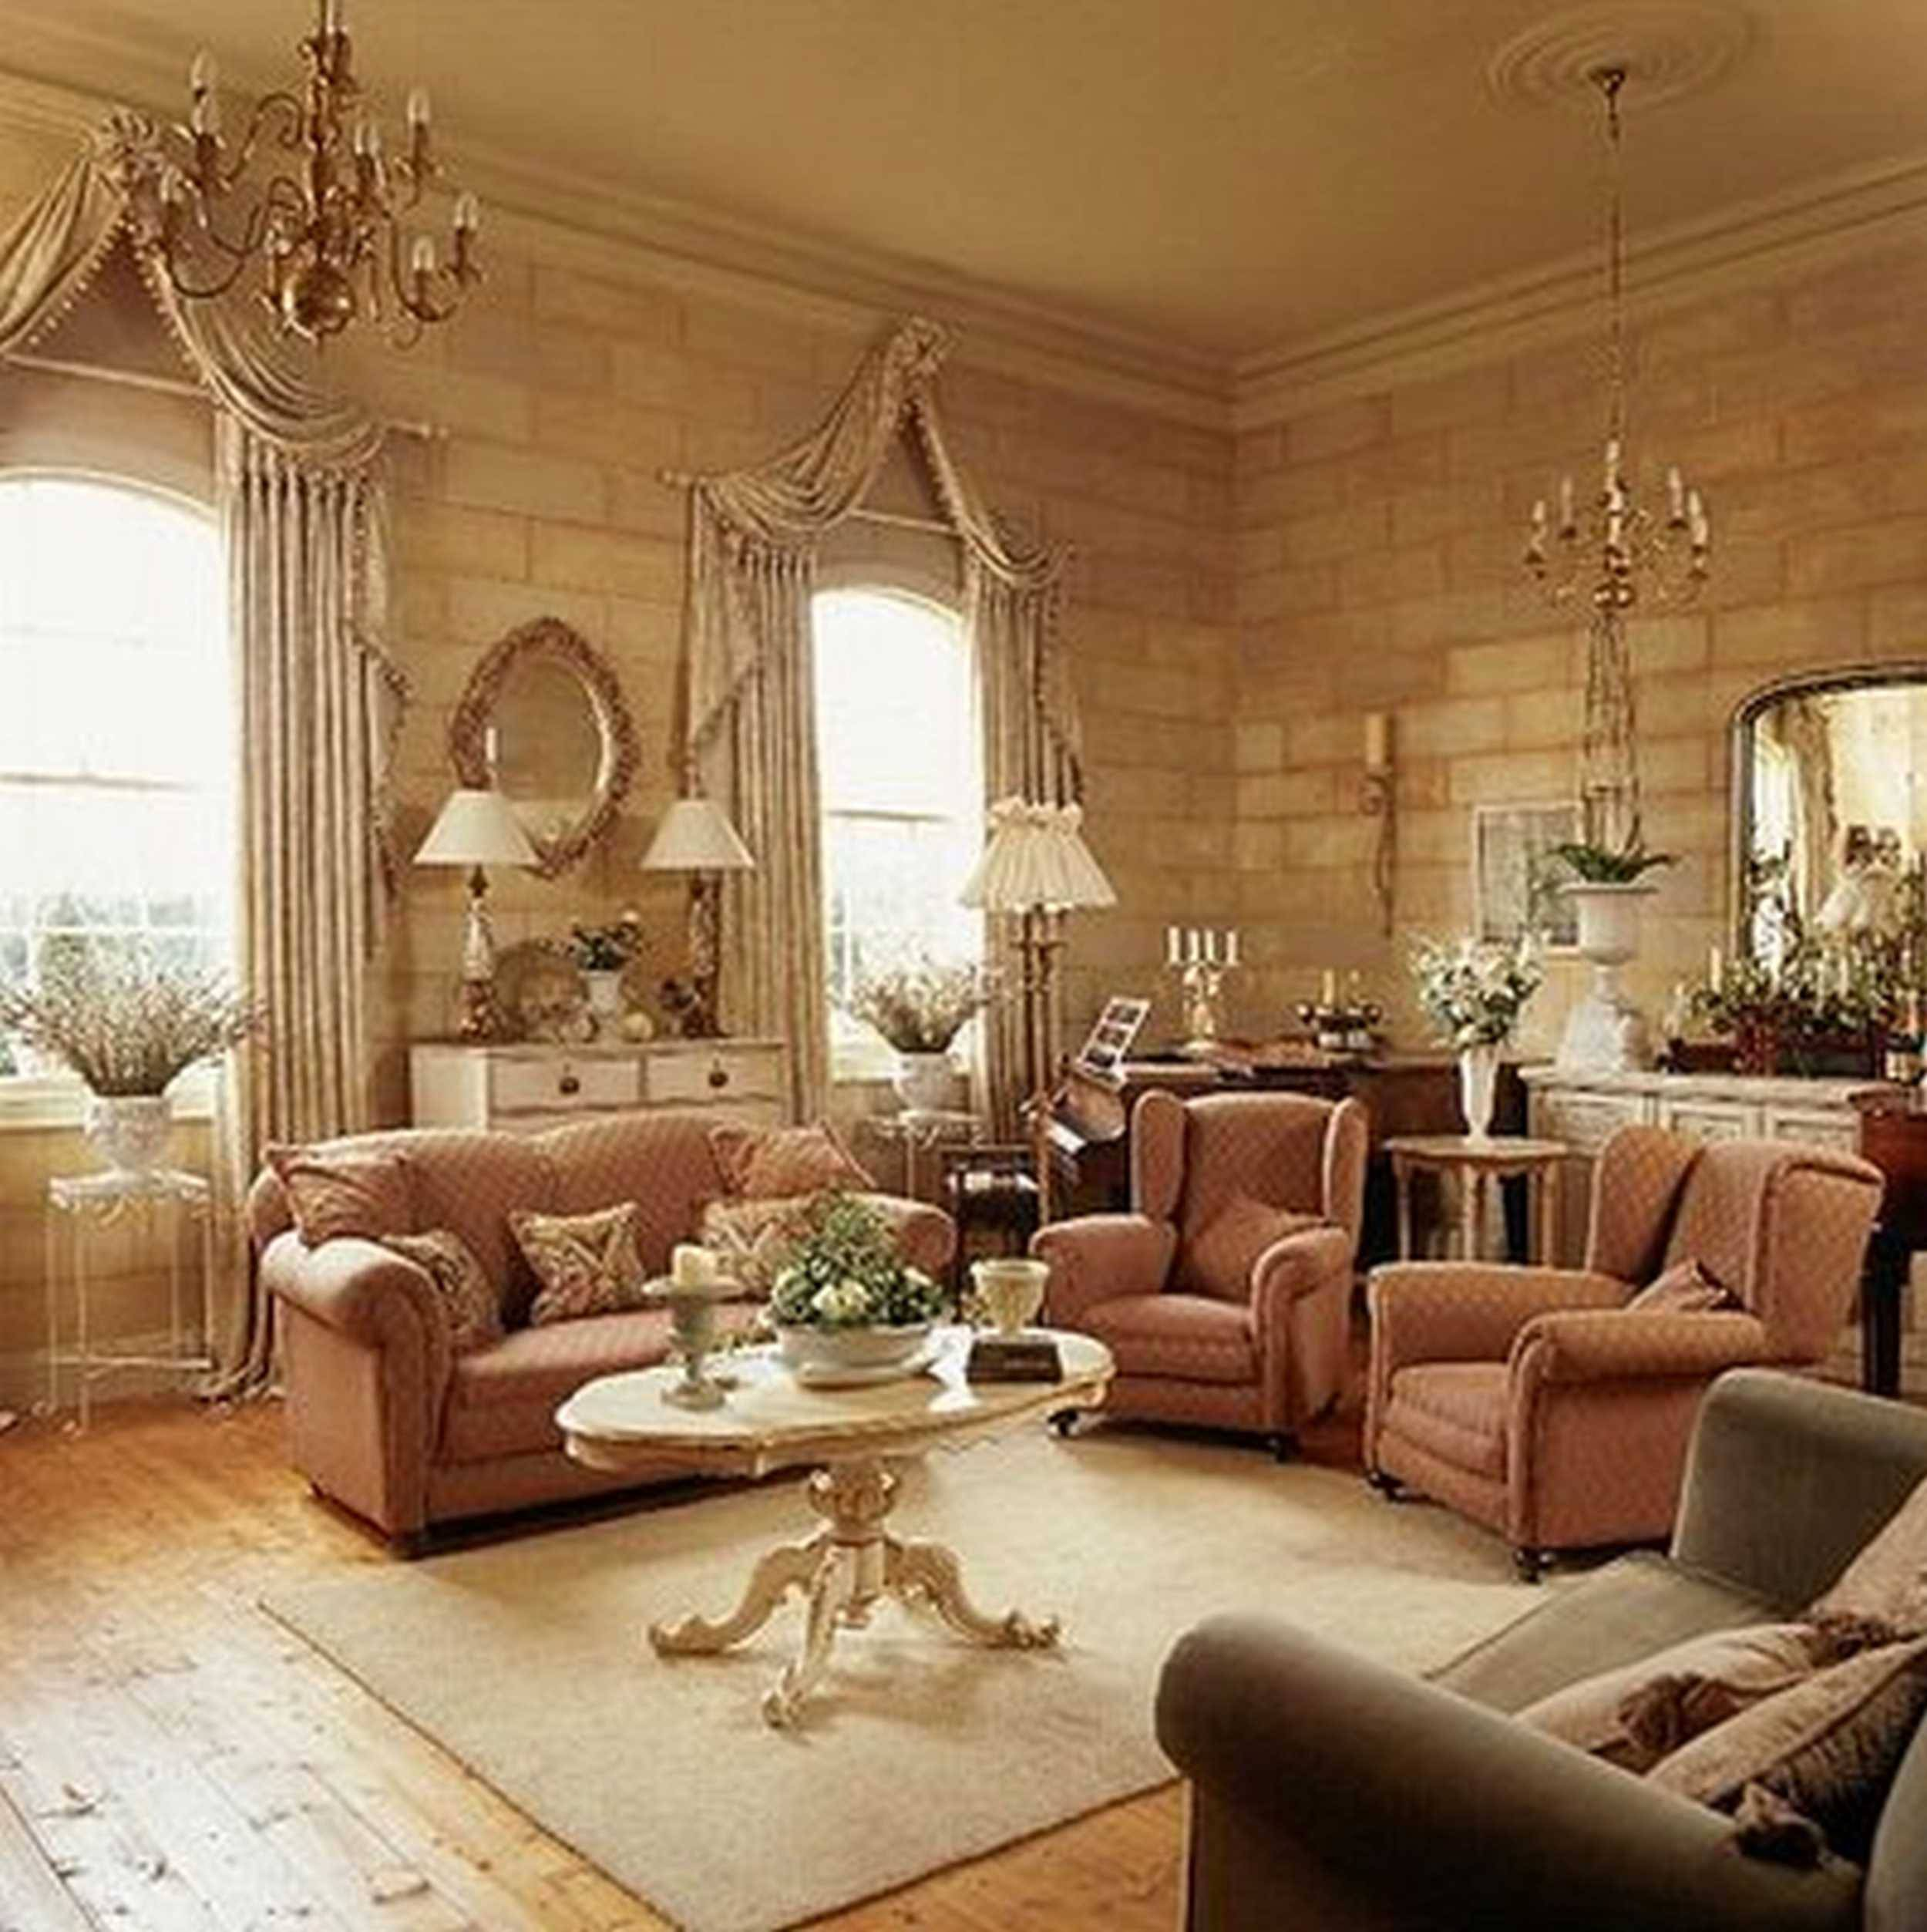 home decor ideas living room decoration pictures luxury living room traditional decorating ideas awesome shaker chairs 0d of home decor ideas living room decoration pictures